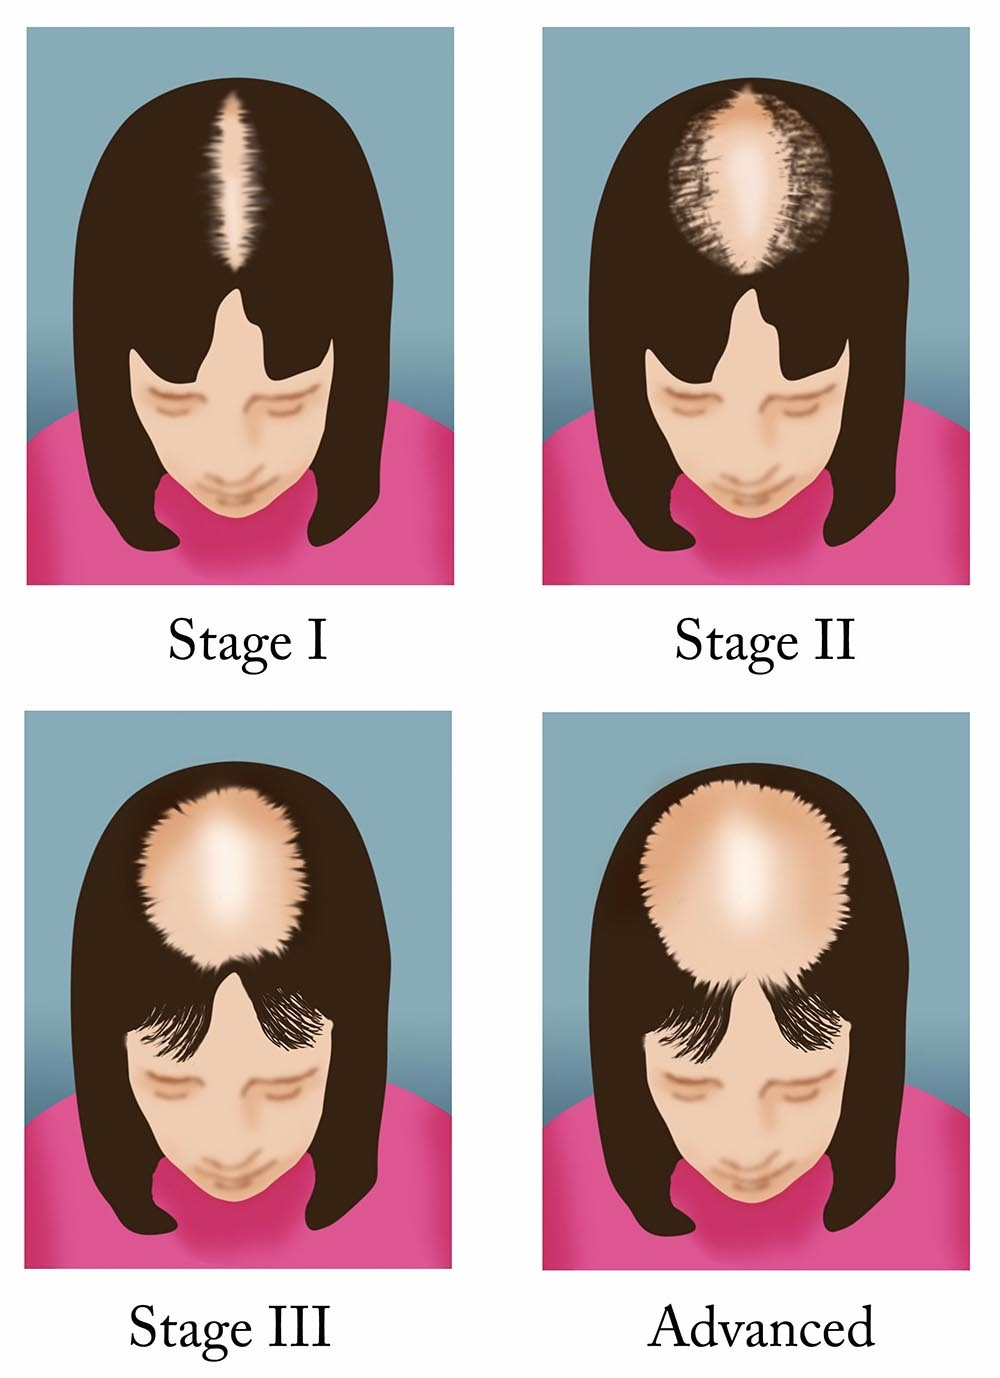 Female Pattern Baldness Healthdirect